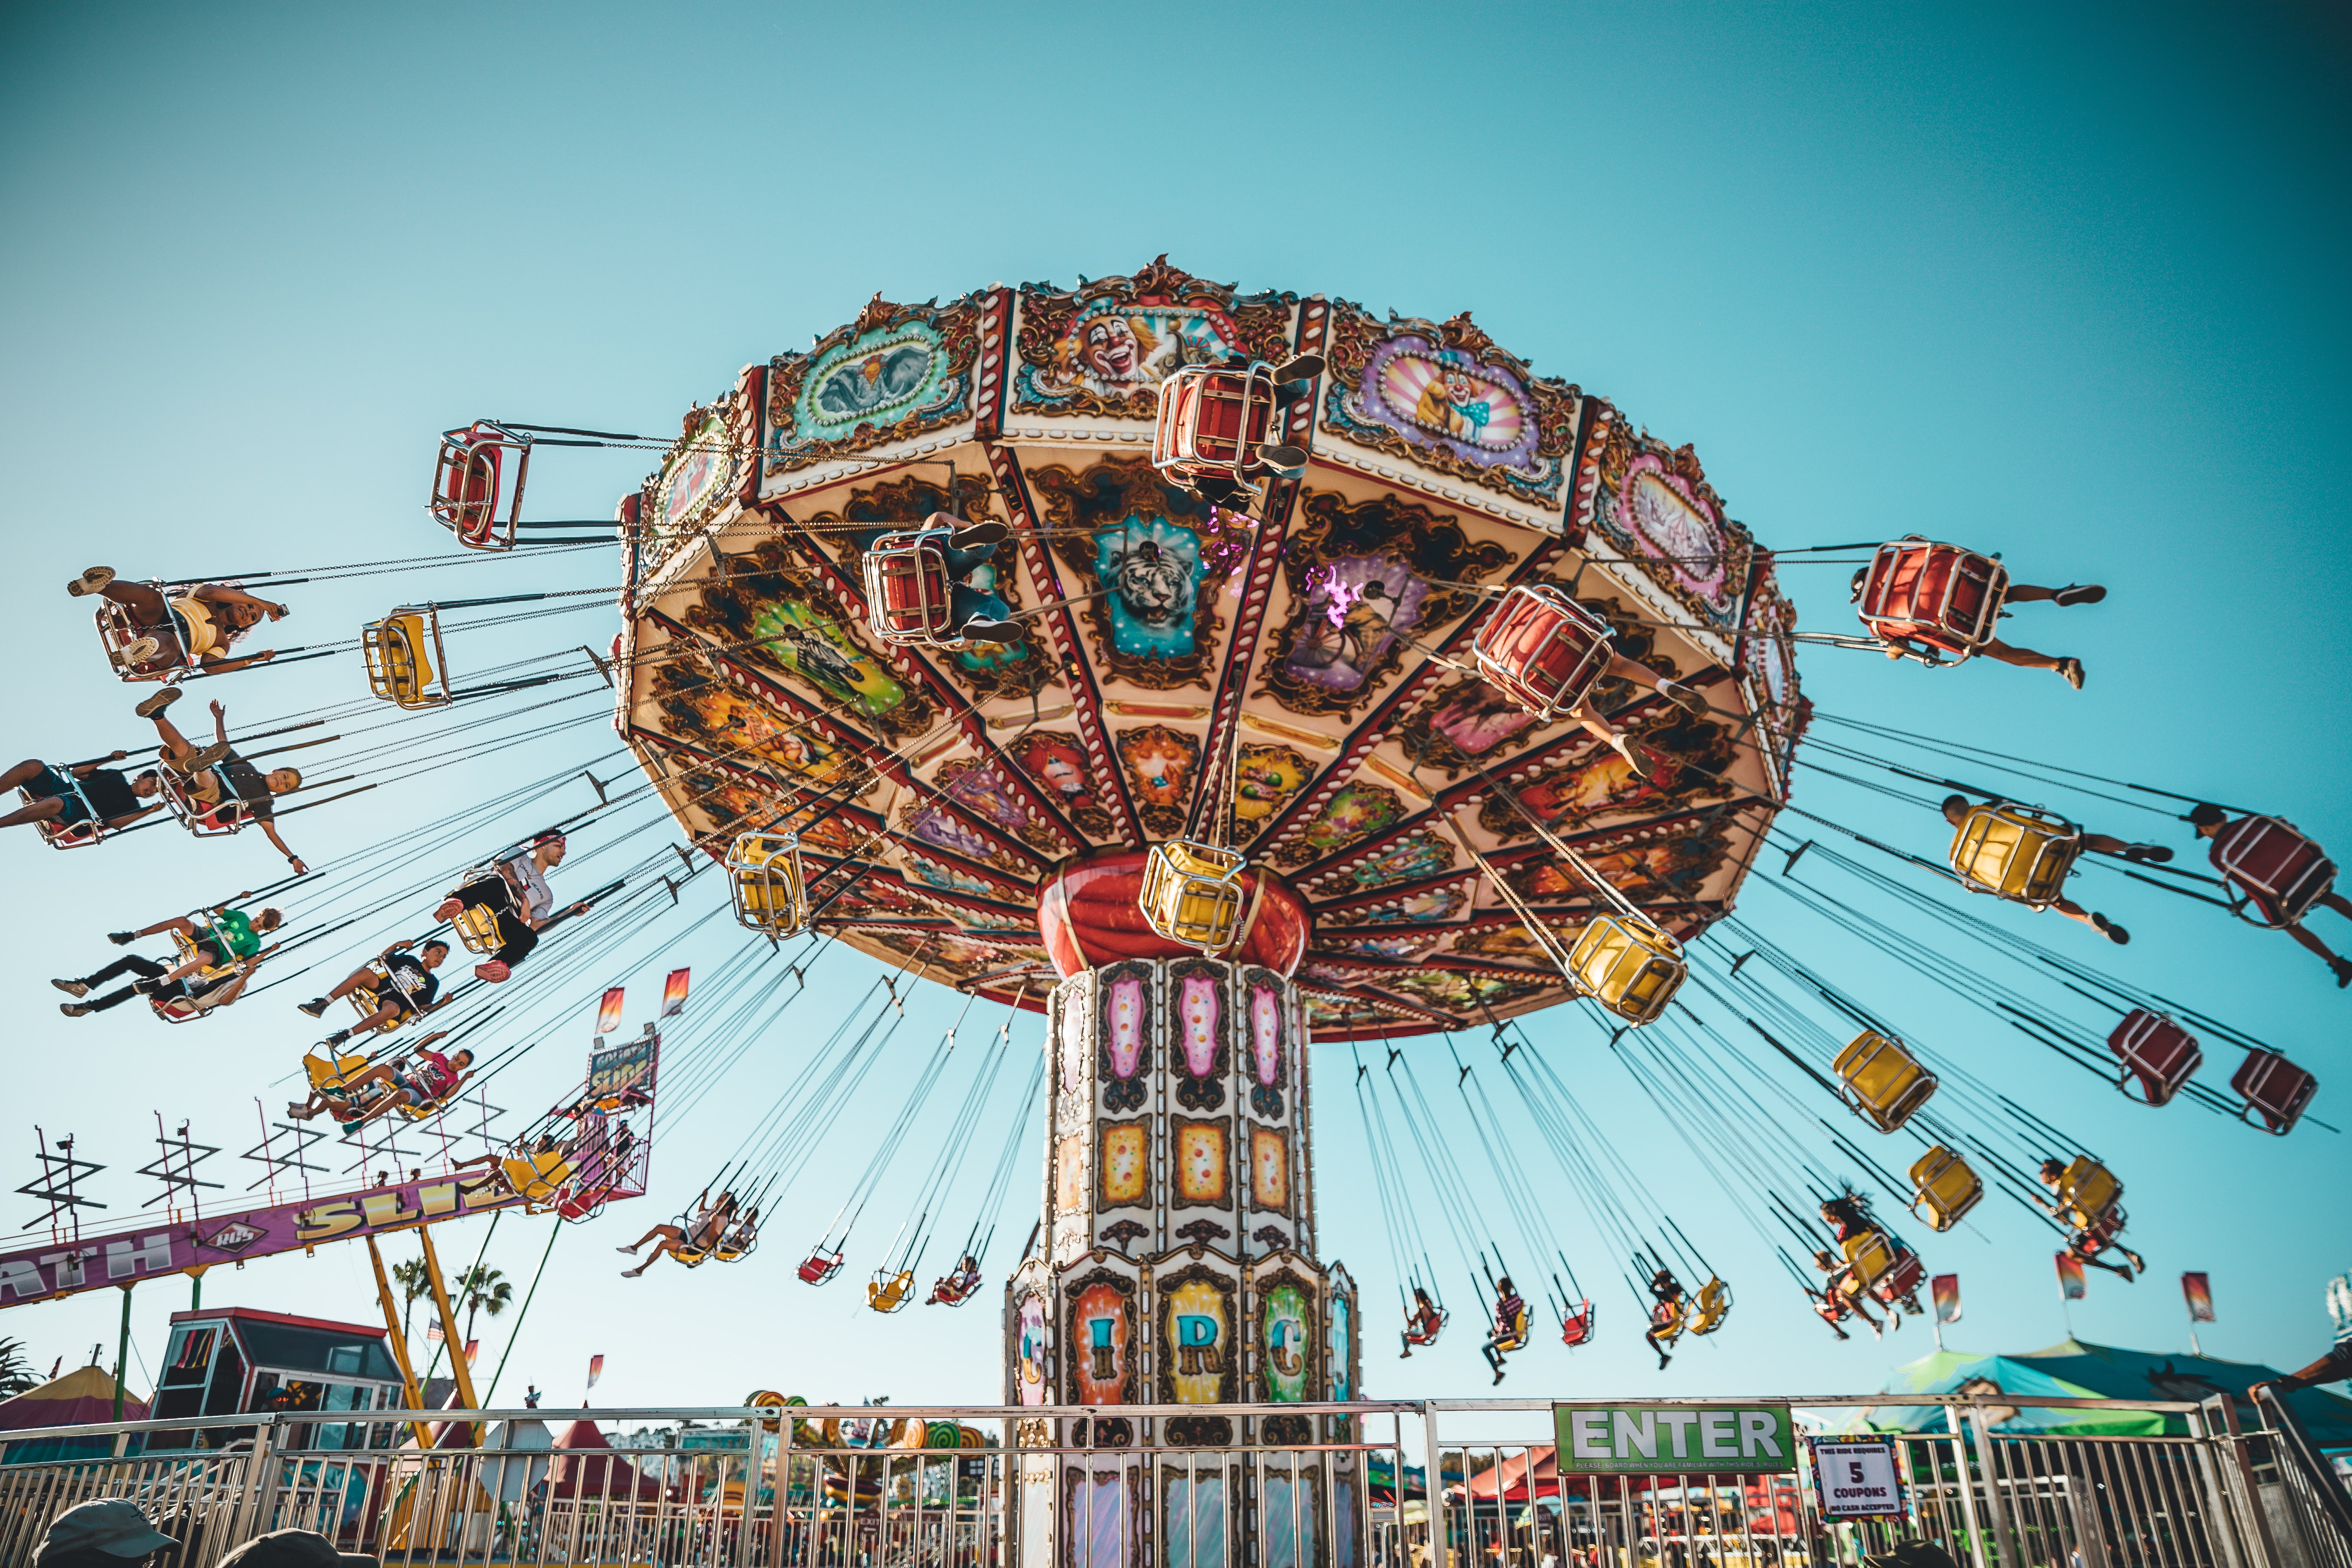 photograph of people riding swing carousel